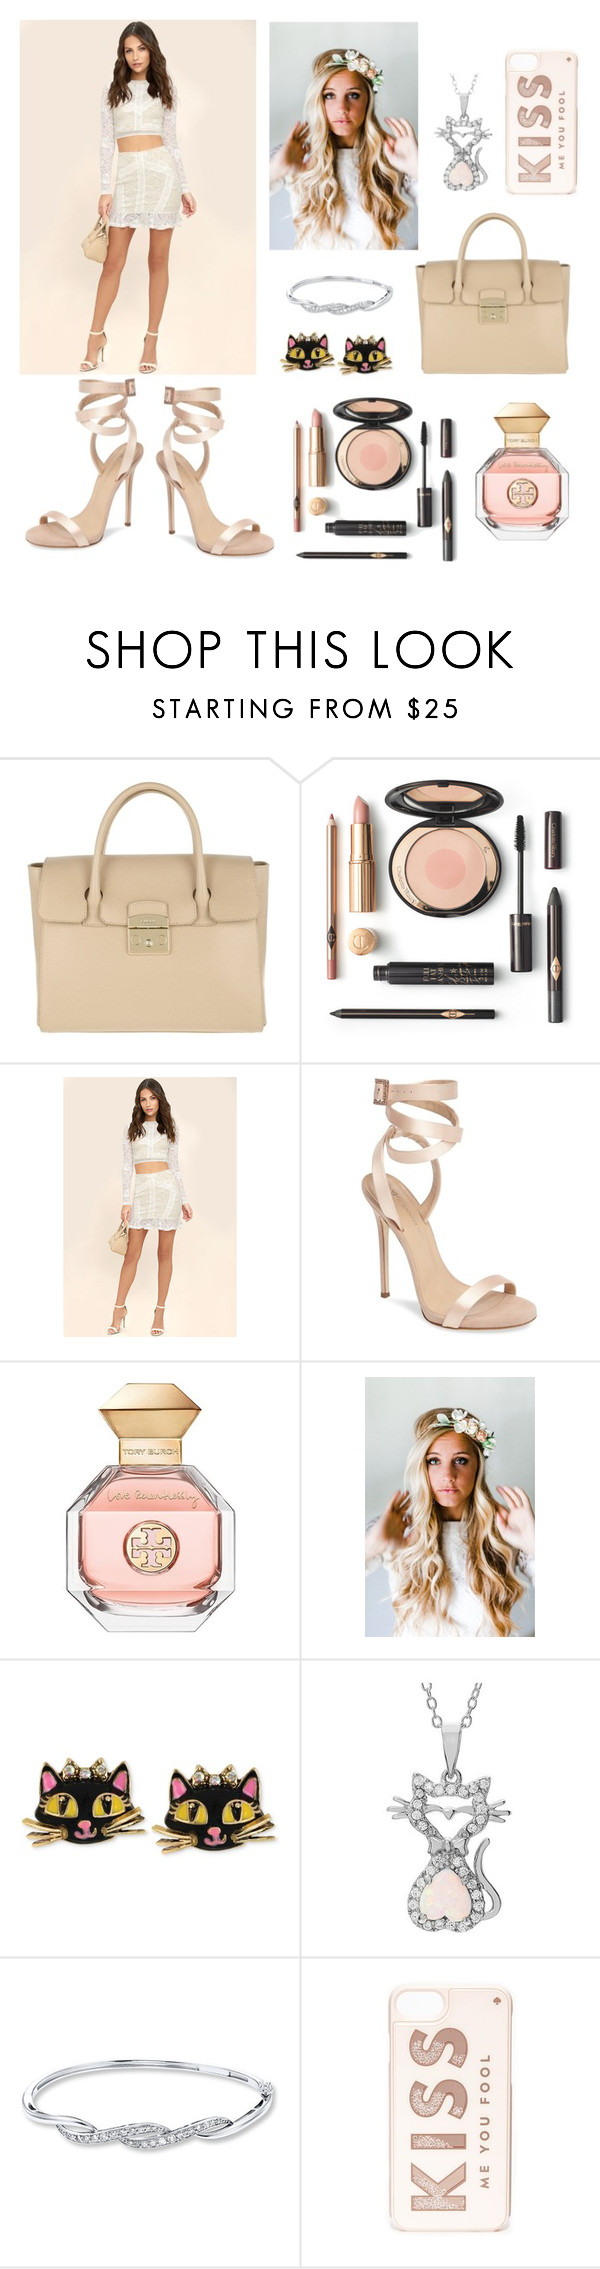 """""""😸"""" by hollyjaki ❤ liked on Polyvore featuring Furla, LULUS, Giuseppe Zanotti, Tory Burch, Emily Rose Flower Crowns, Betsey Johnson, Journee Collection and Kate Spade"""